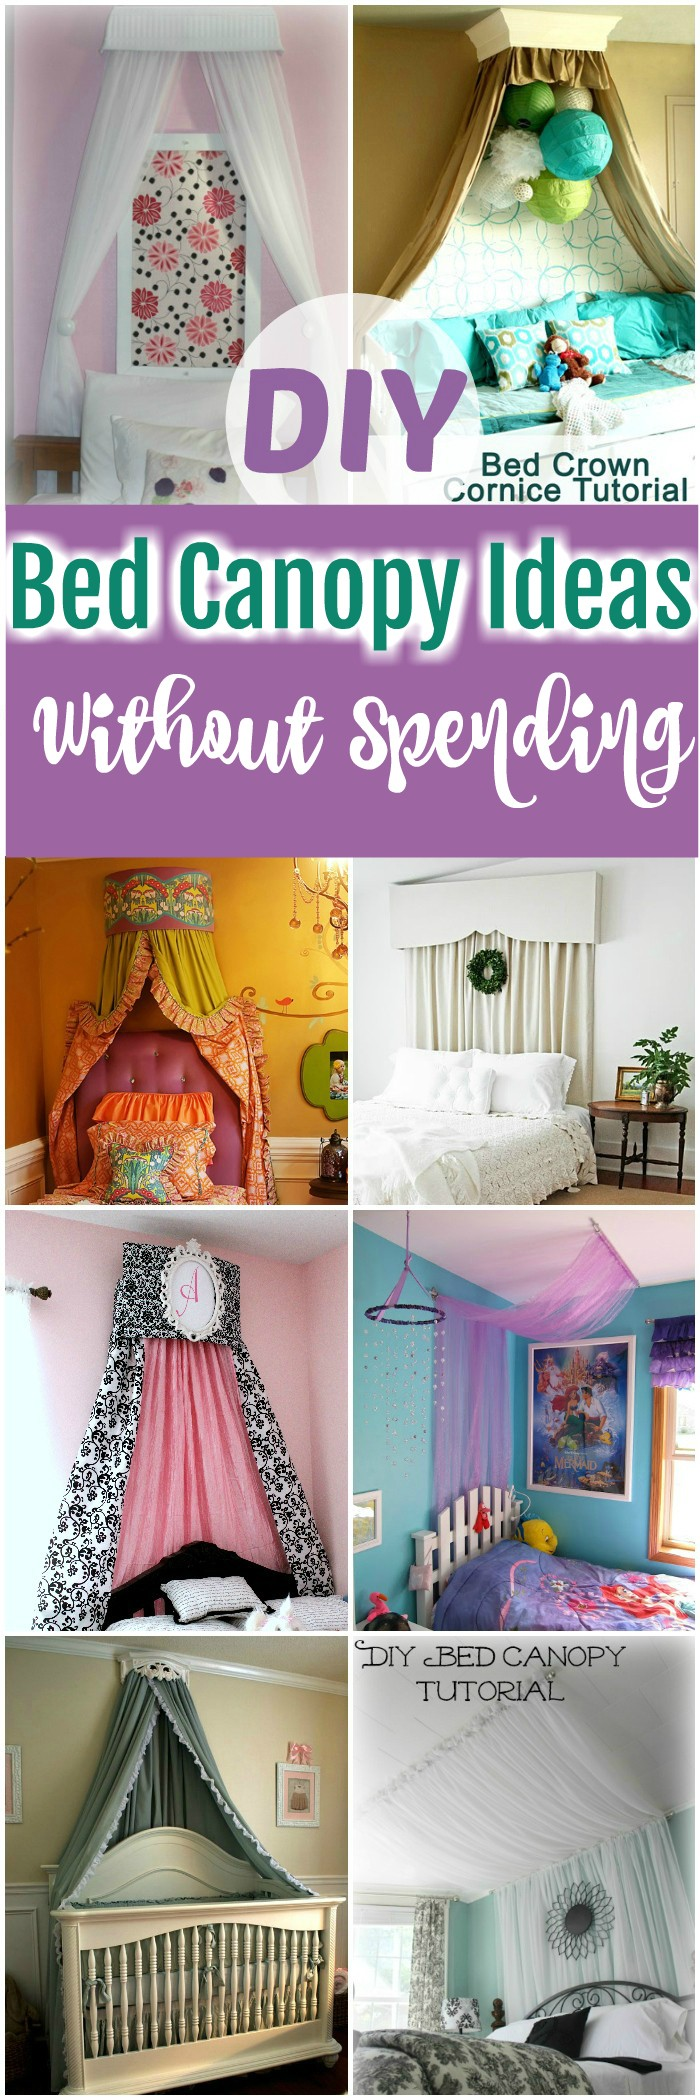 DIY Bed Canopy Ideas DIY Bed Canopy Ideas Without Spending A Lot